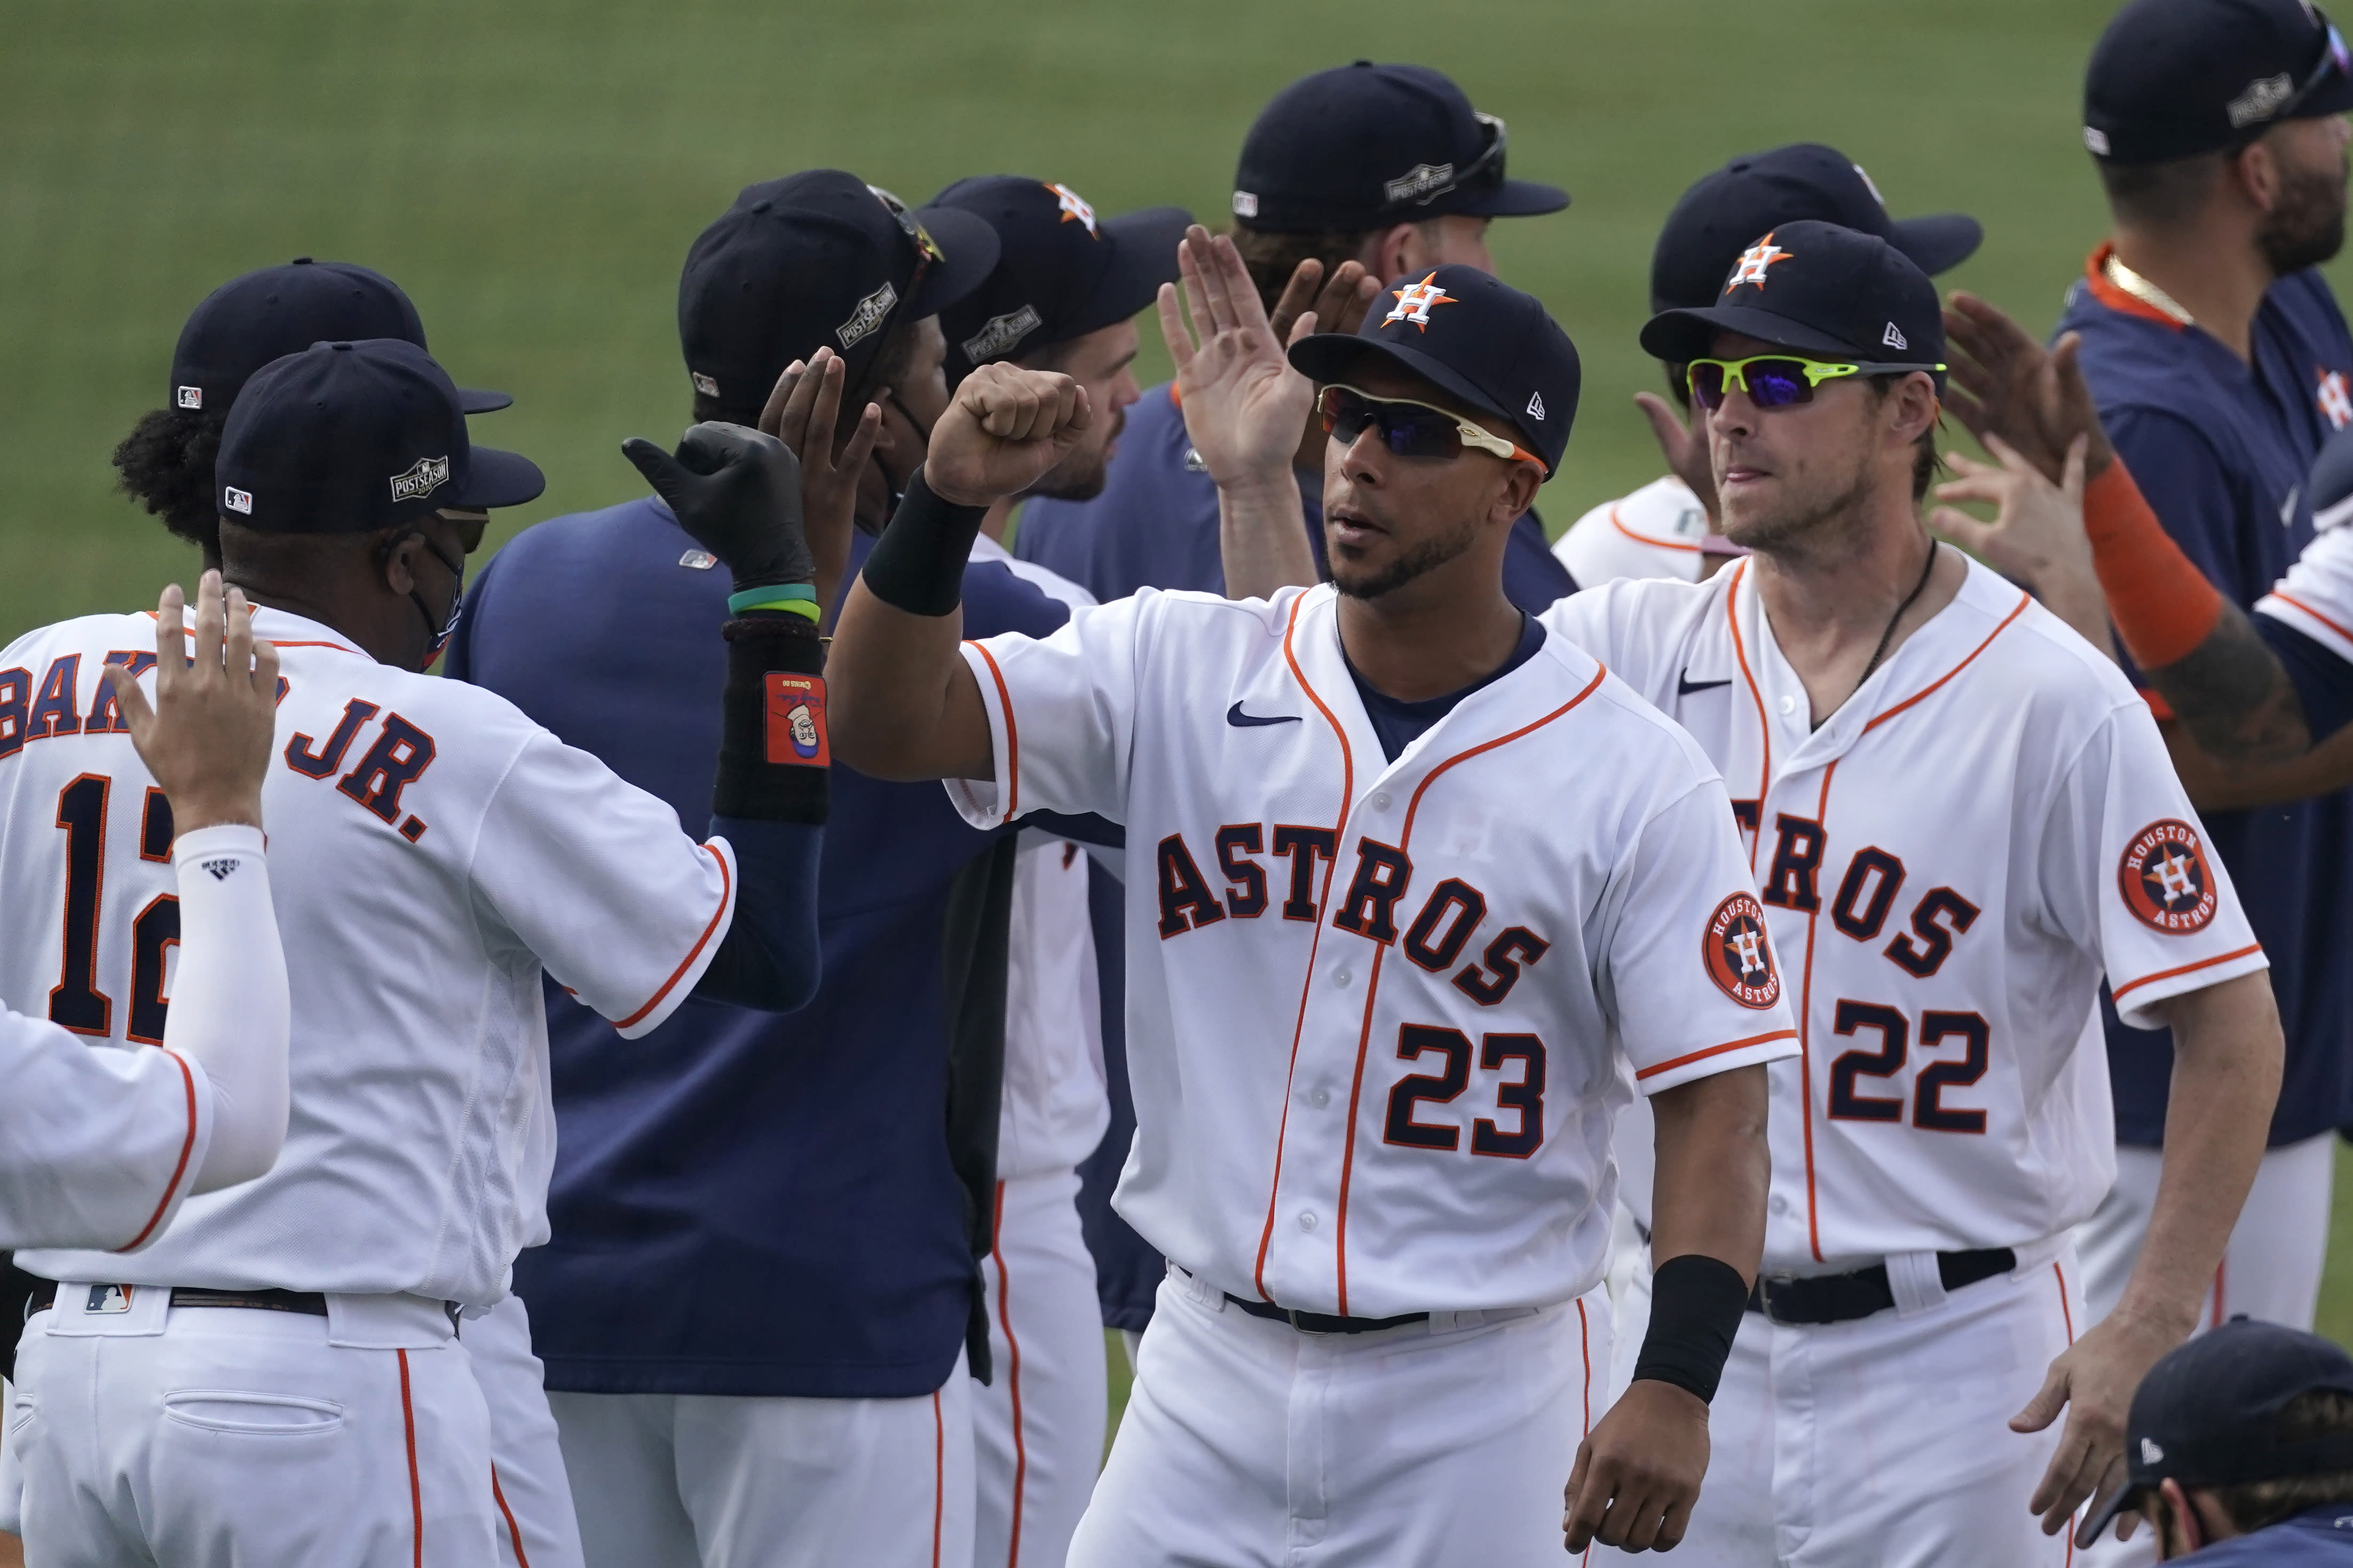 Houston Astros manager Dusty Baker Jr., left, celebrates with Michael Brantley (23), Josh Reddick (22) and others after the Astros defeated the Oakland Athletics in Game 4 of a baseball American League Division Series in Los Angeles, Thursday, Oct. 8, 2020. (AP Photo/Ashley Landis)